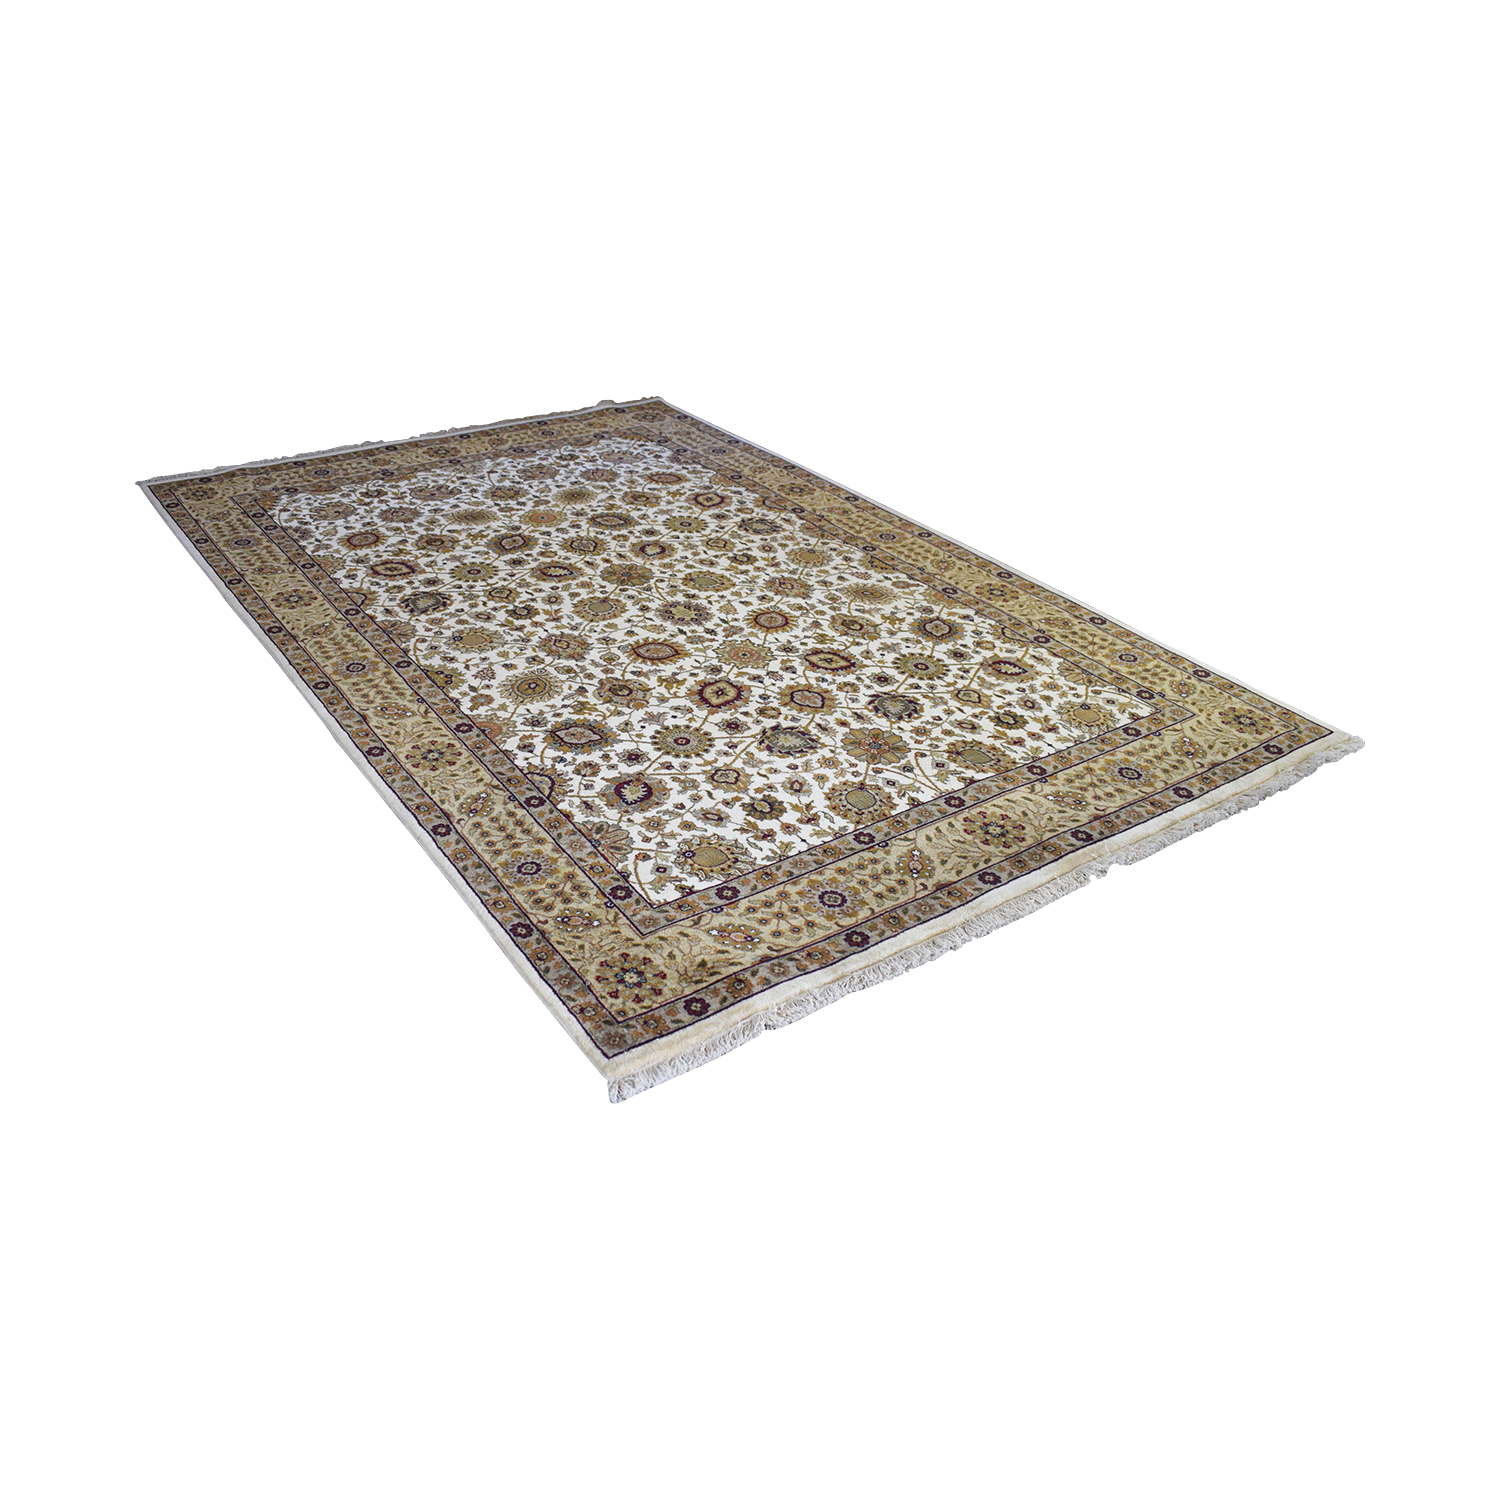 Abu Rugs and Home Abu Rugs and Home Beige Floral Oriental Rug on sale